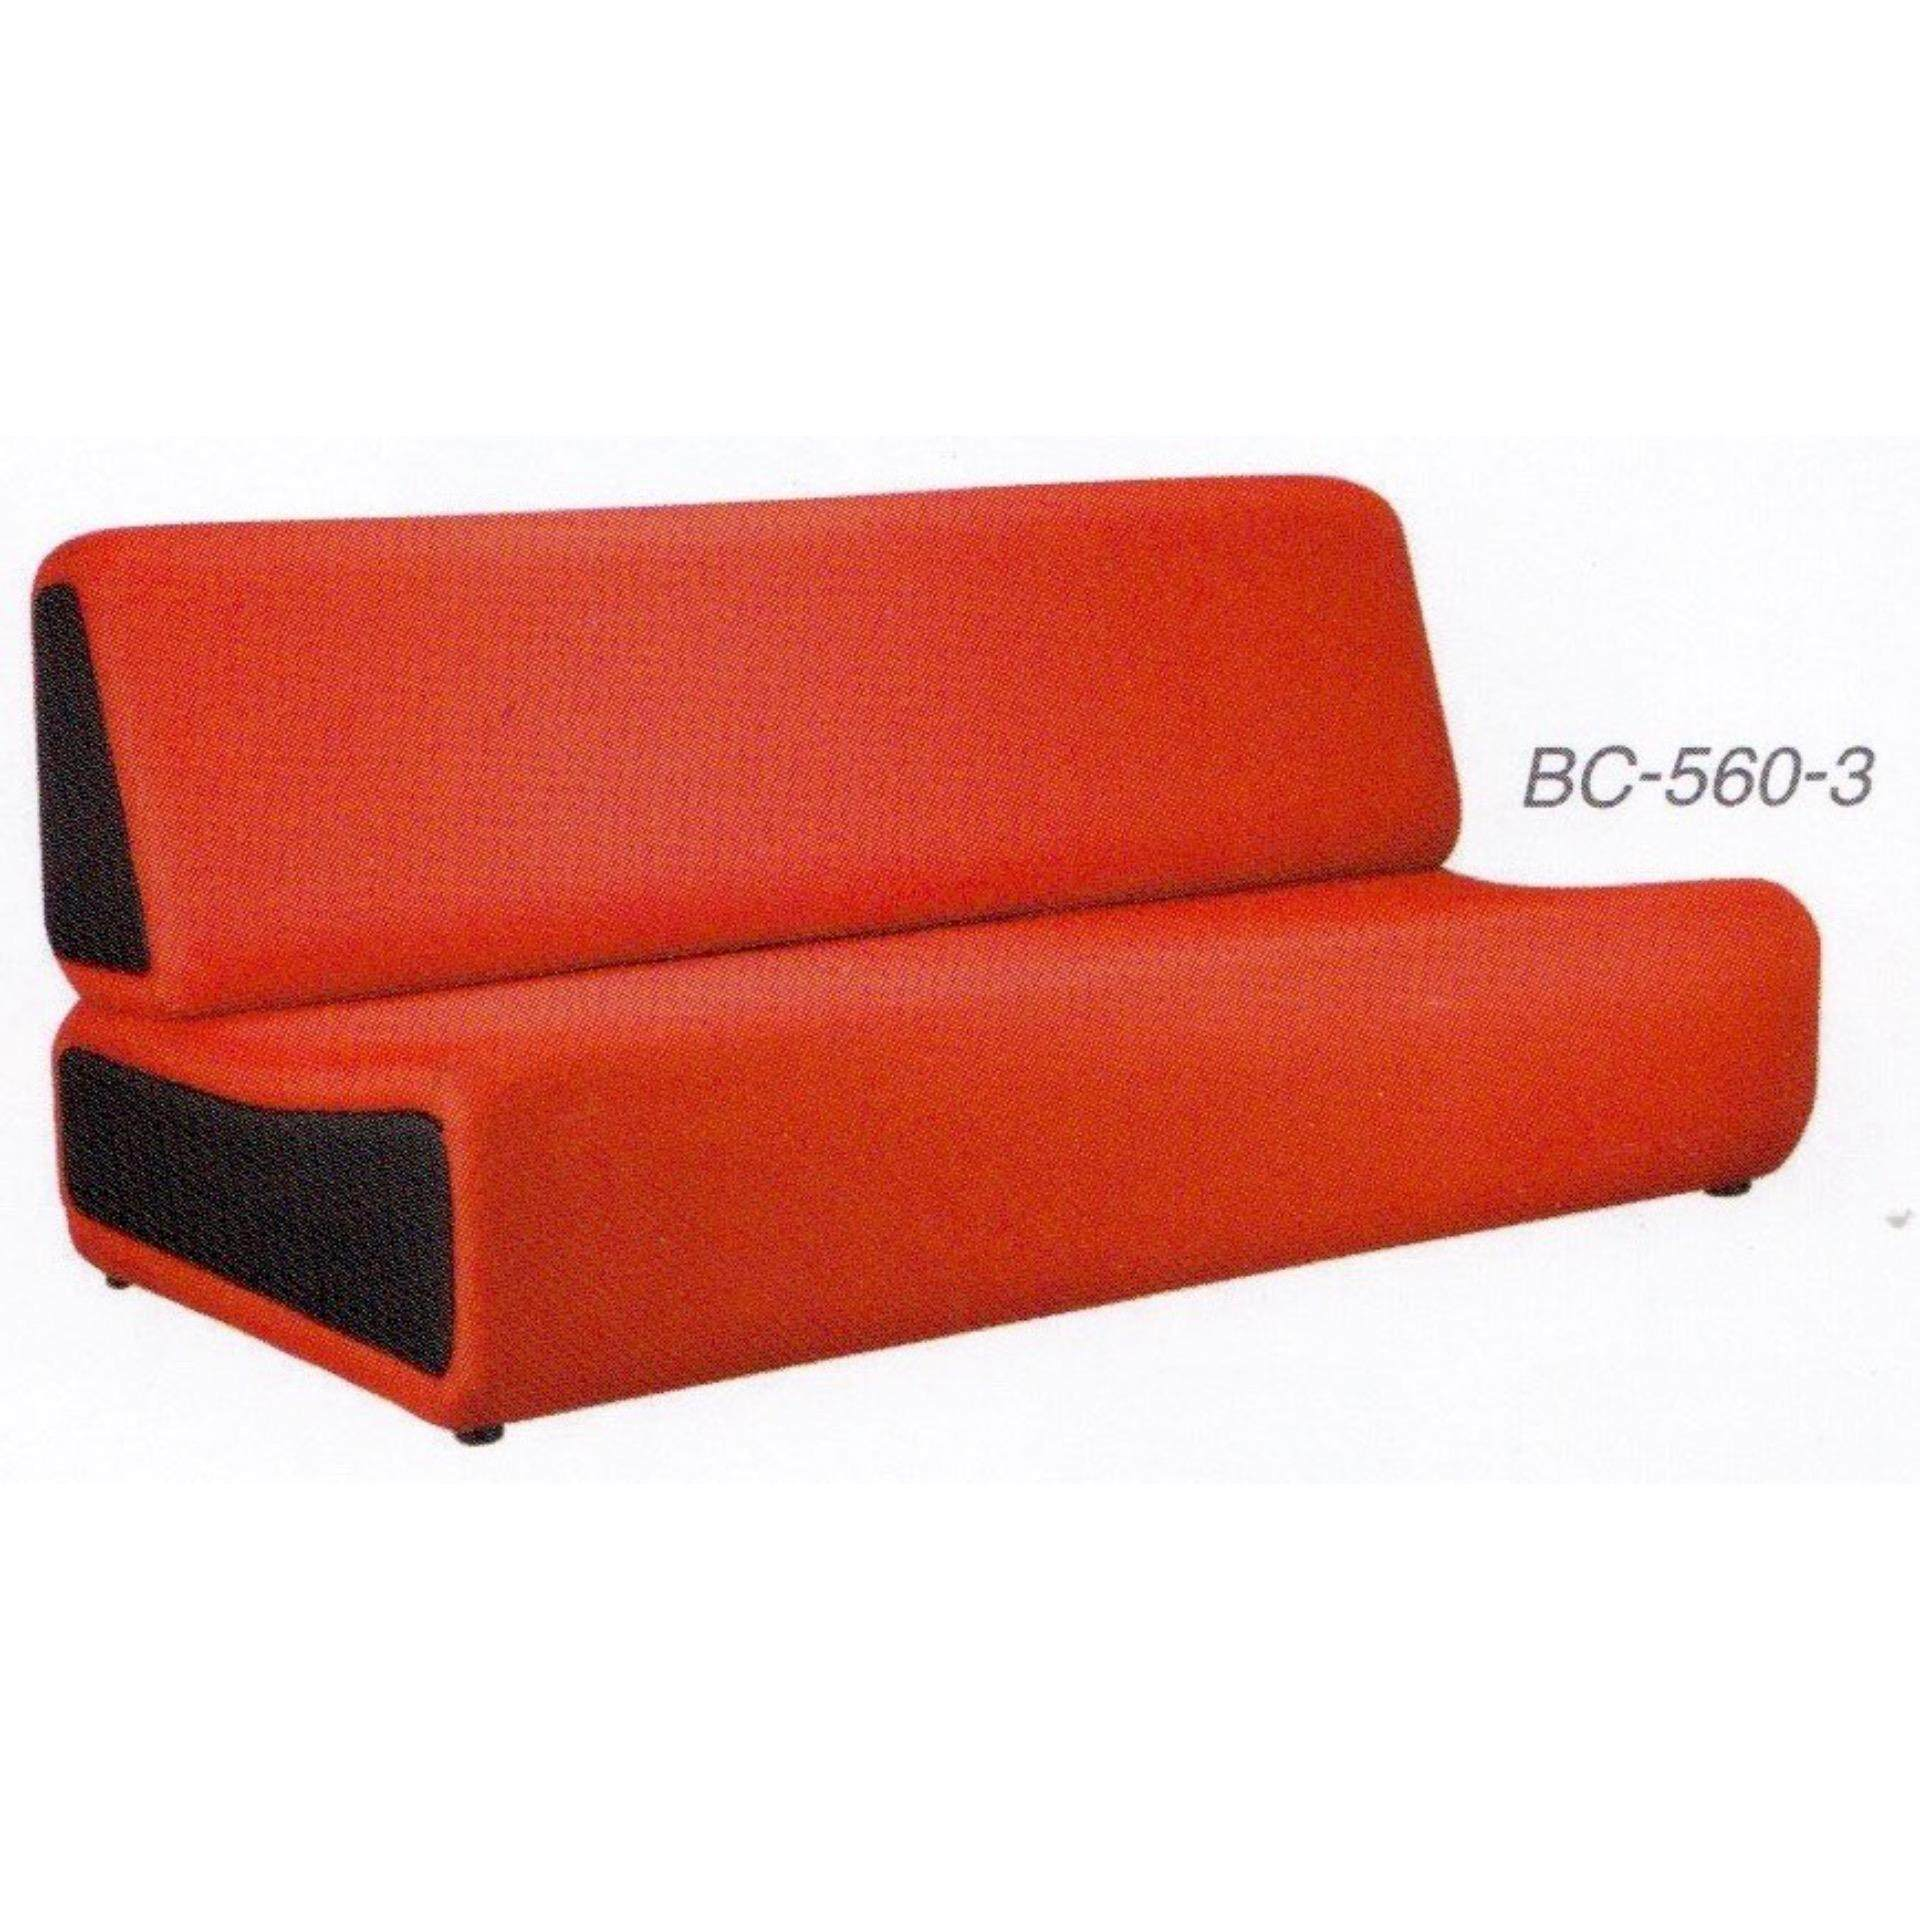 Deco Waiting Area 3-Seater Cushion Link Chair Hall Clinics Office (Red Color) L1630MM X D820MM X H720MM Pre-Order 2 Weeks